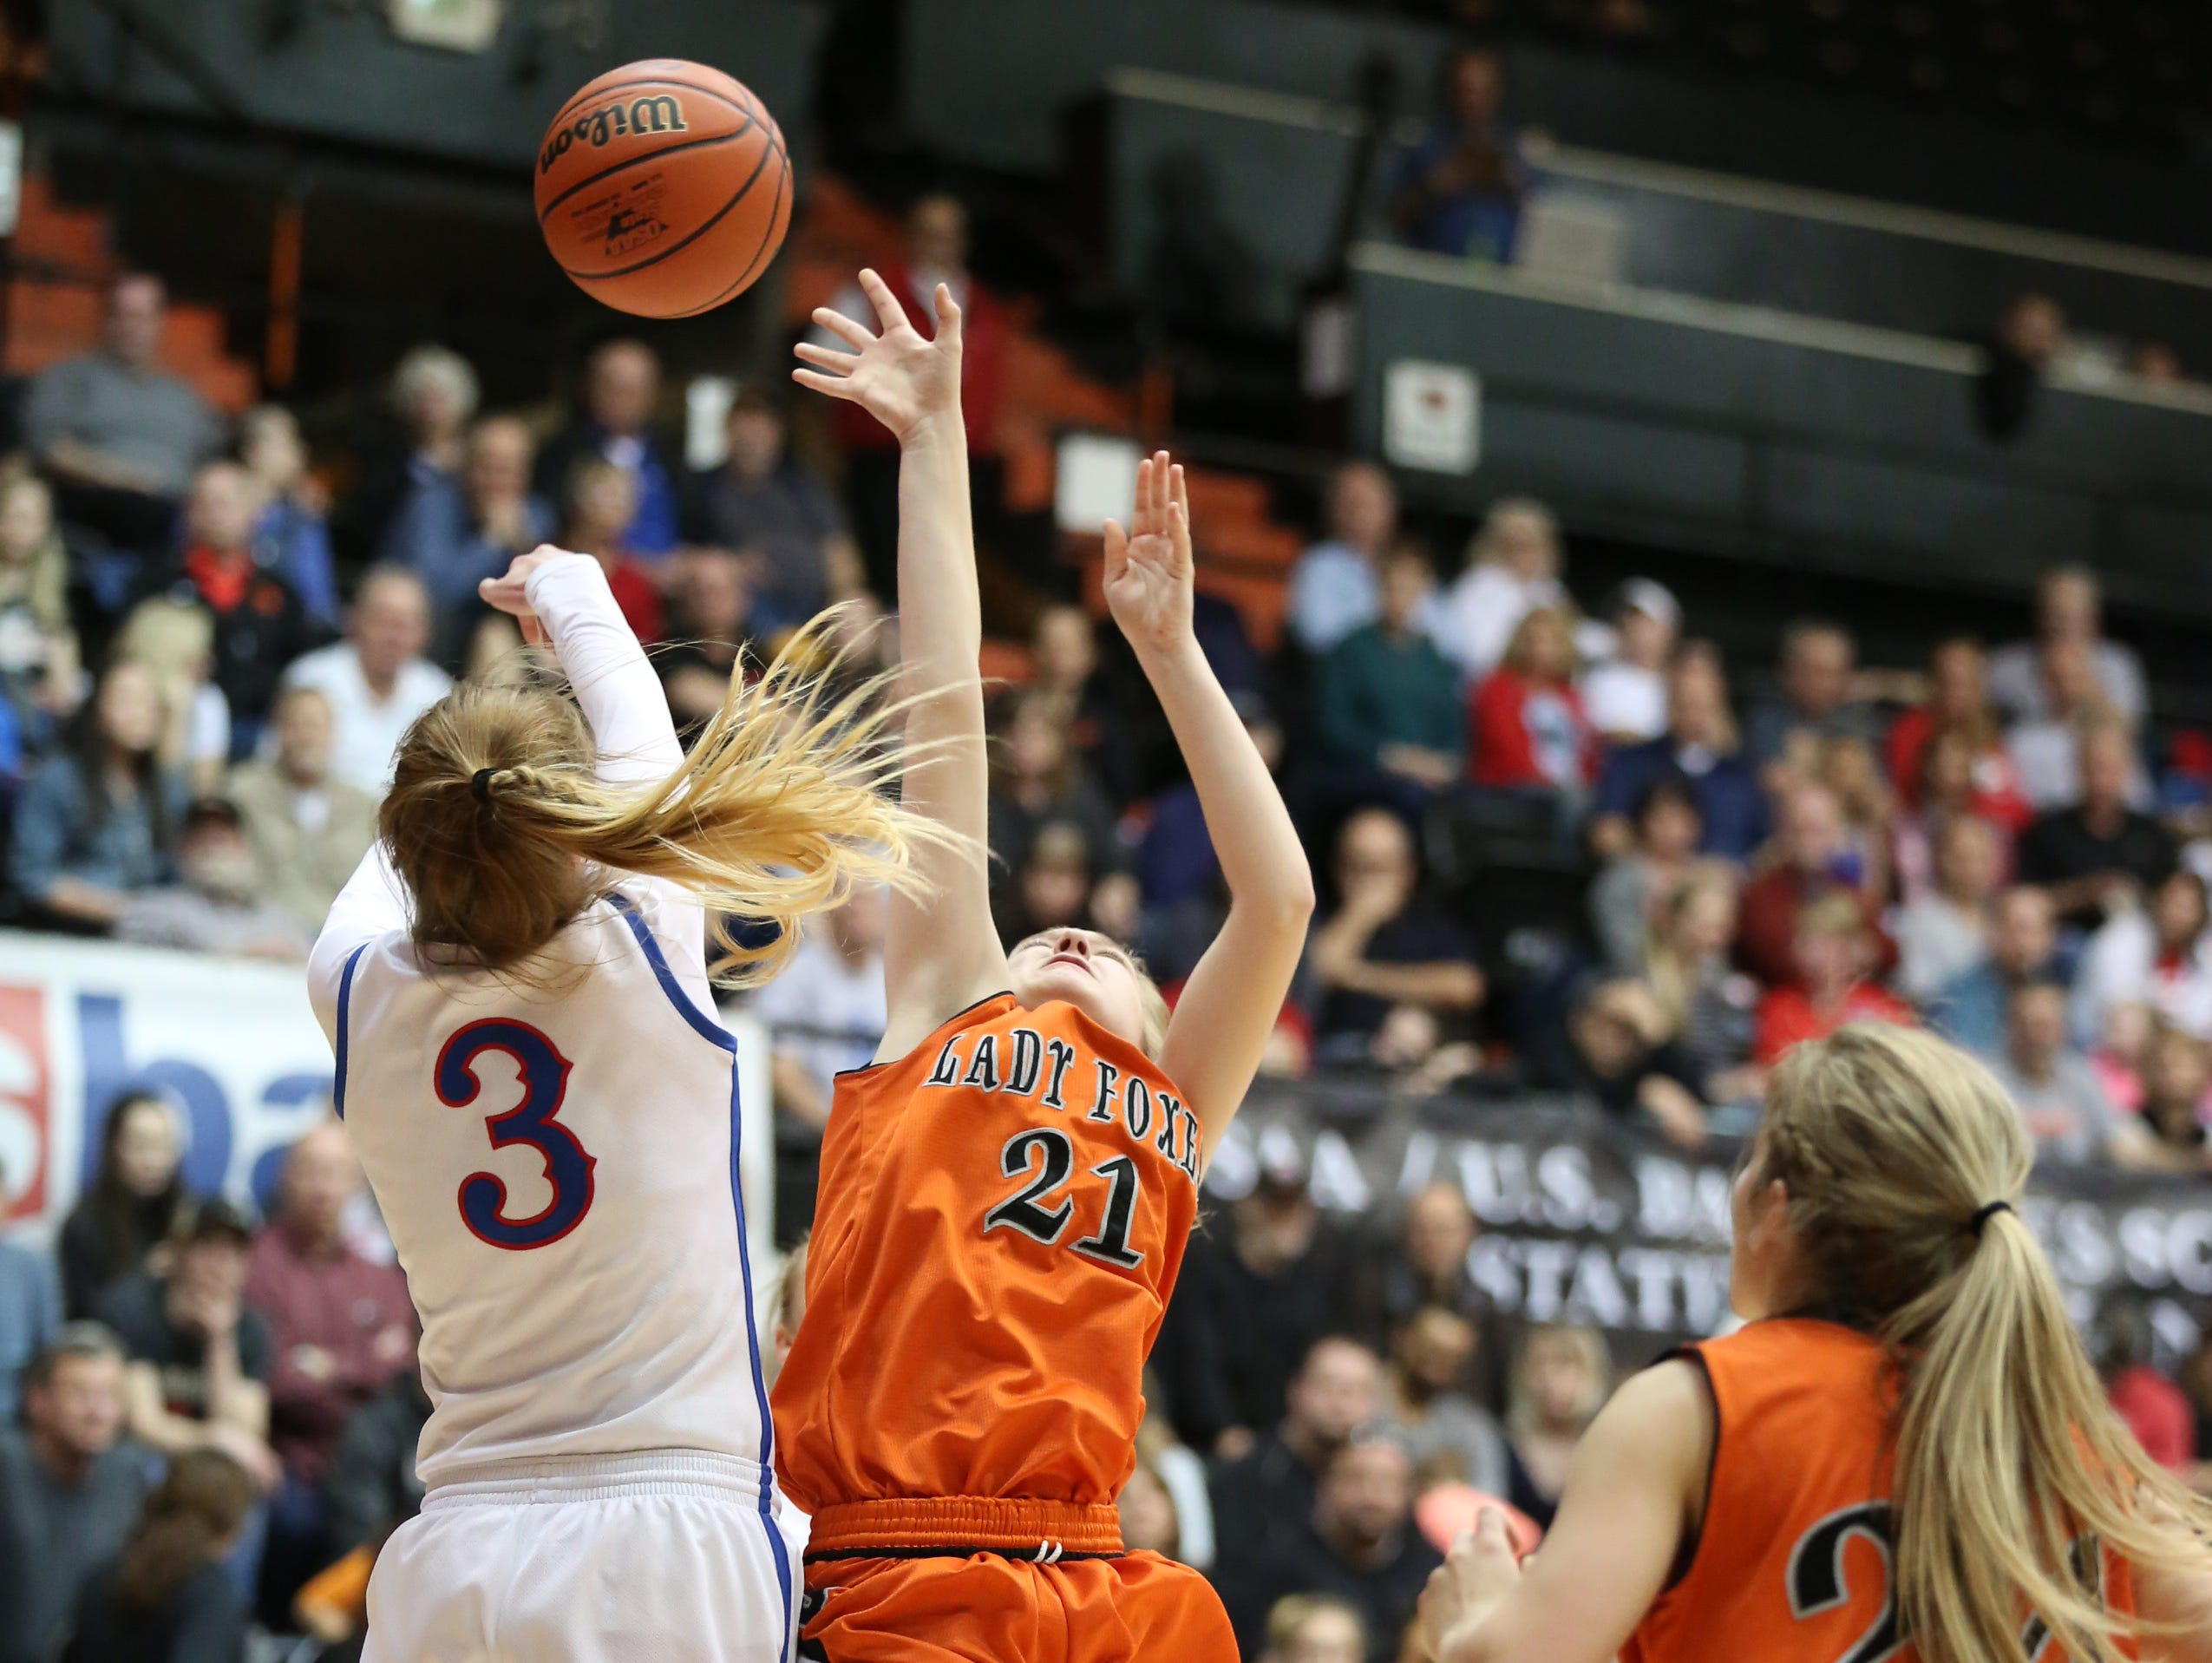 Silverton's Madison Ulven and the Foxes fall to La Salle 42-28 in the OSAA Class 5A state championship on Friday, March 10, 2017, at Gill Coliseum in Corvallis.